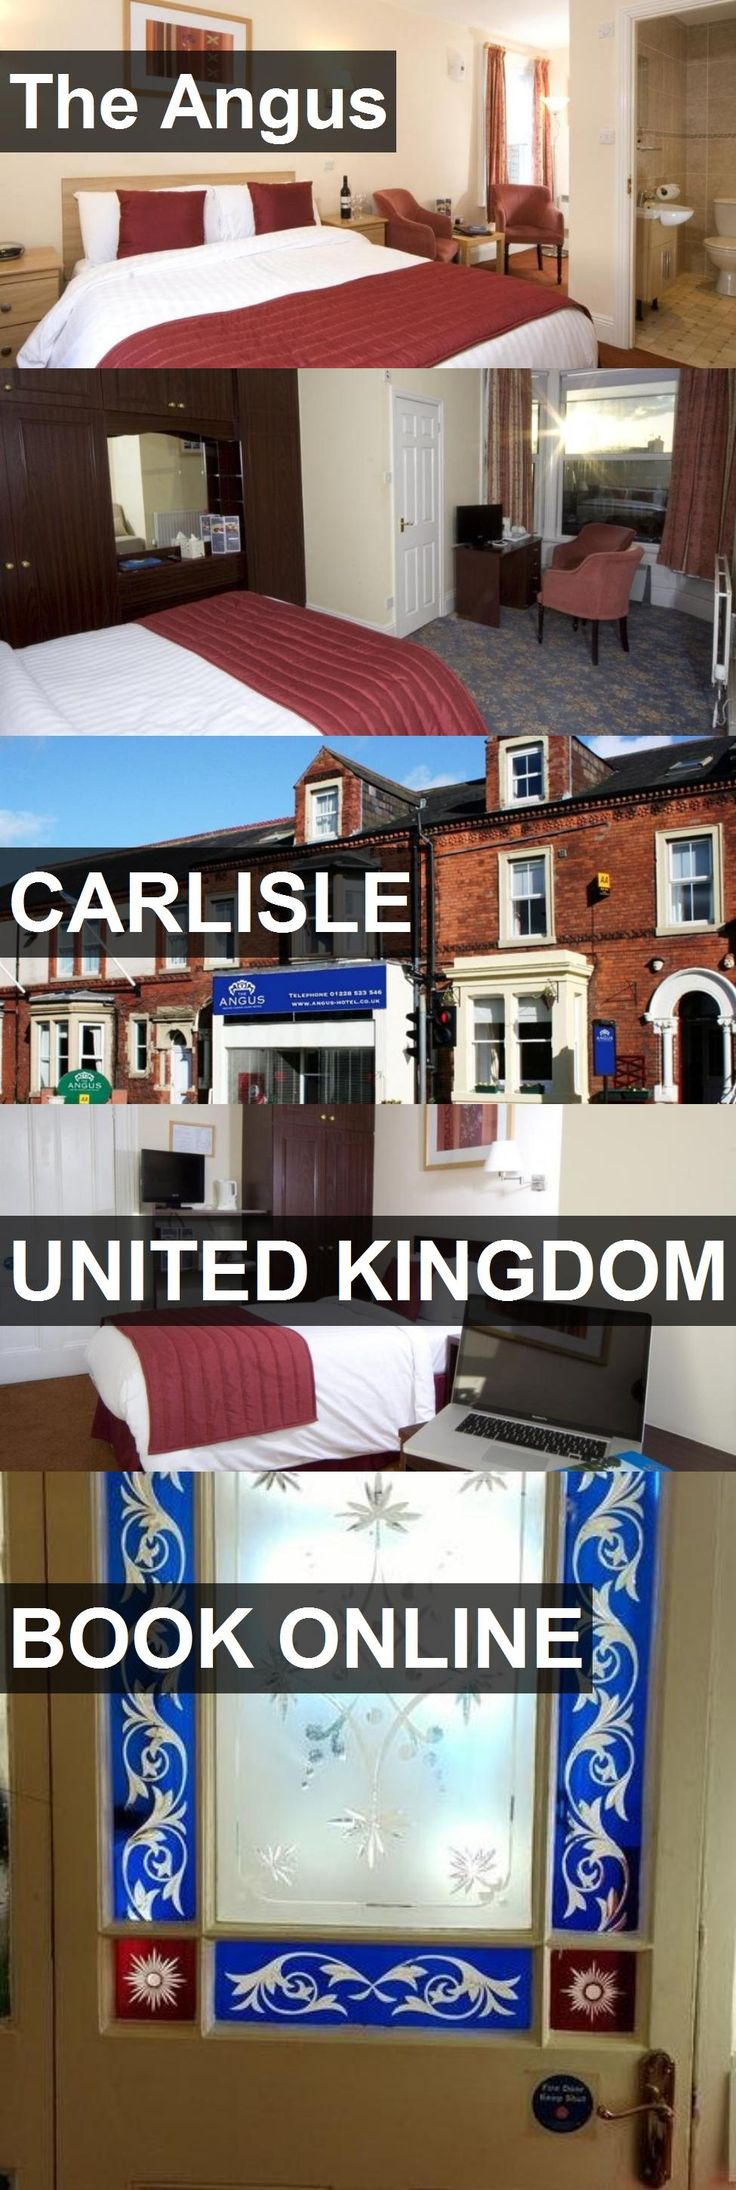 Hotel The Angus in Carlisle, United Kingdom. For more information, photos, reviews and best prices please follow the link. #UnitedKingdom #Carlisle #travel #vacation #hotel